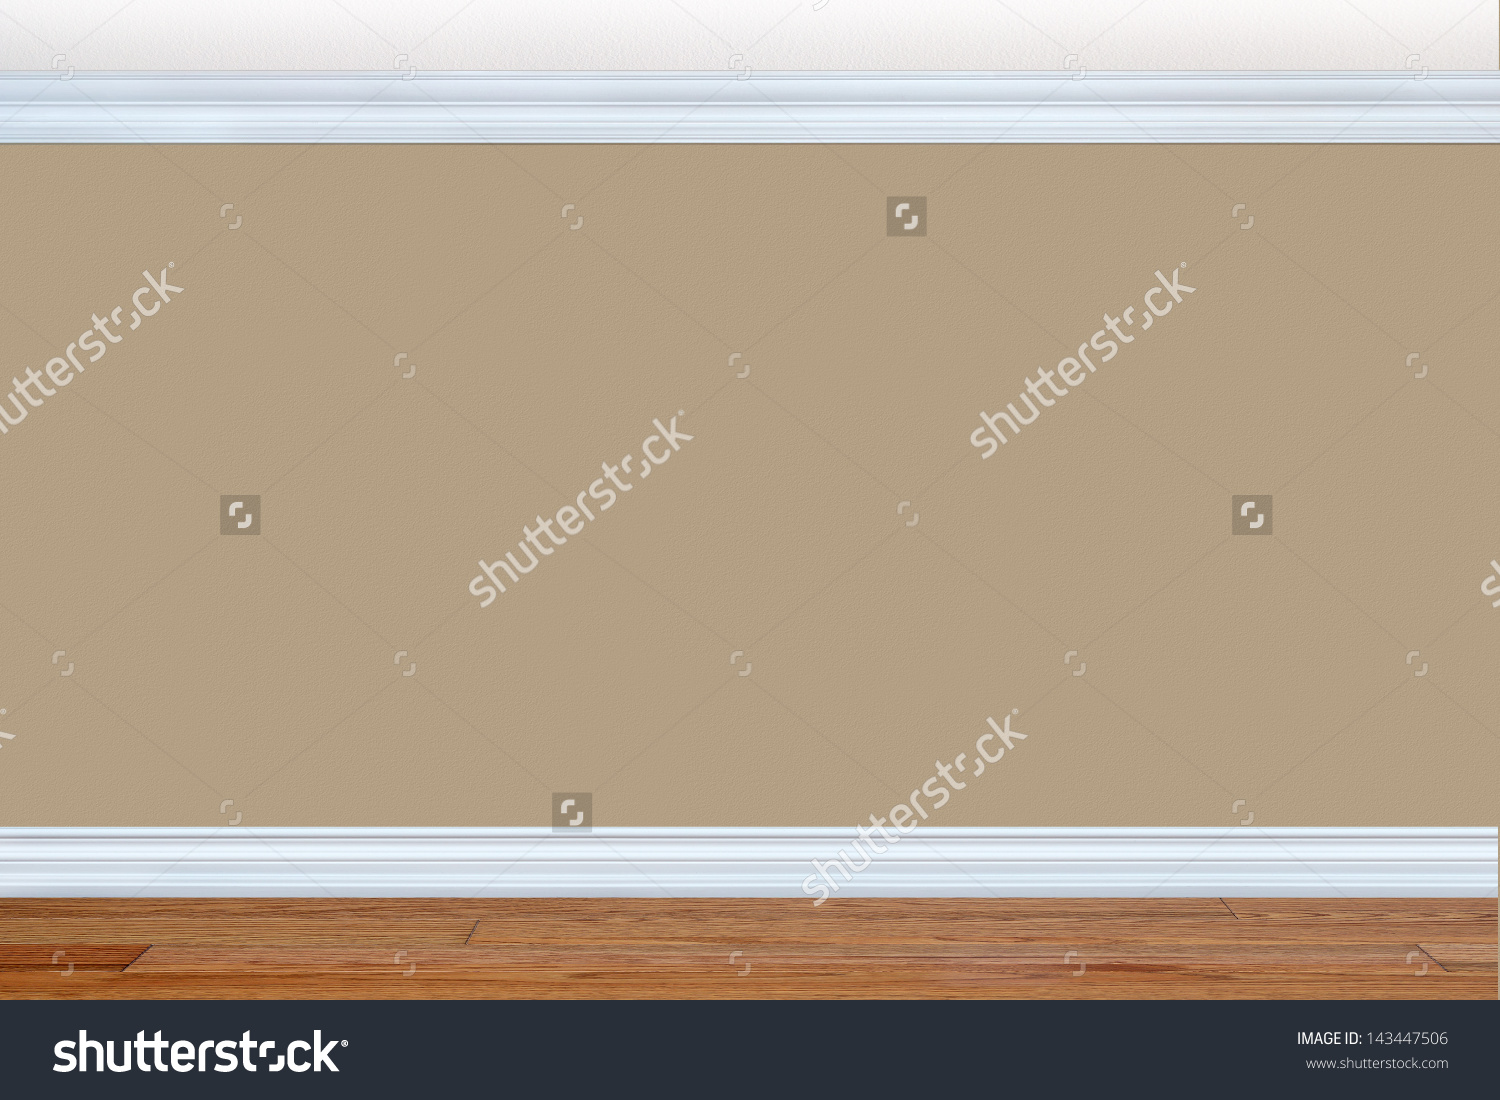 Bedroom Wall Baseboard Crown Molding Stock Photo 143447506.